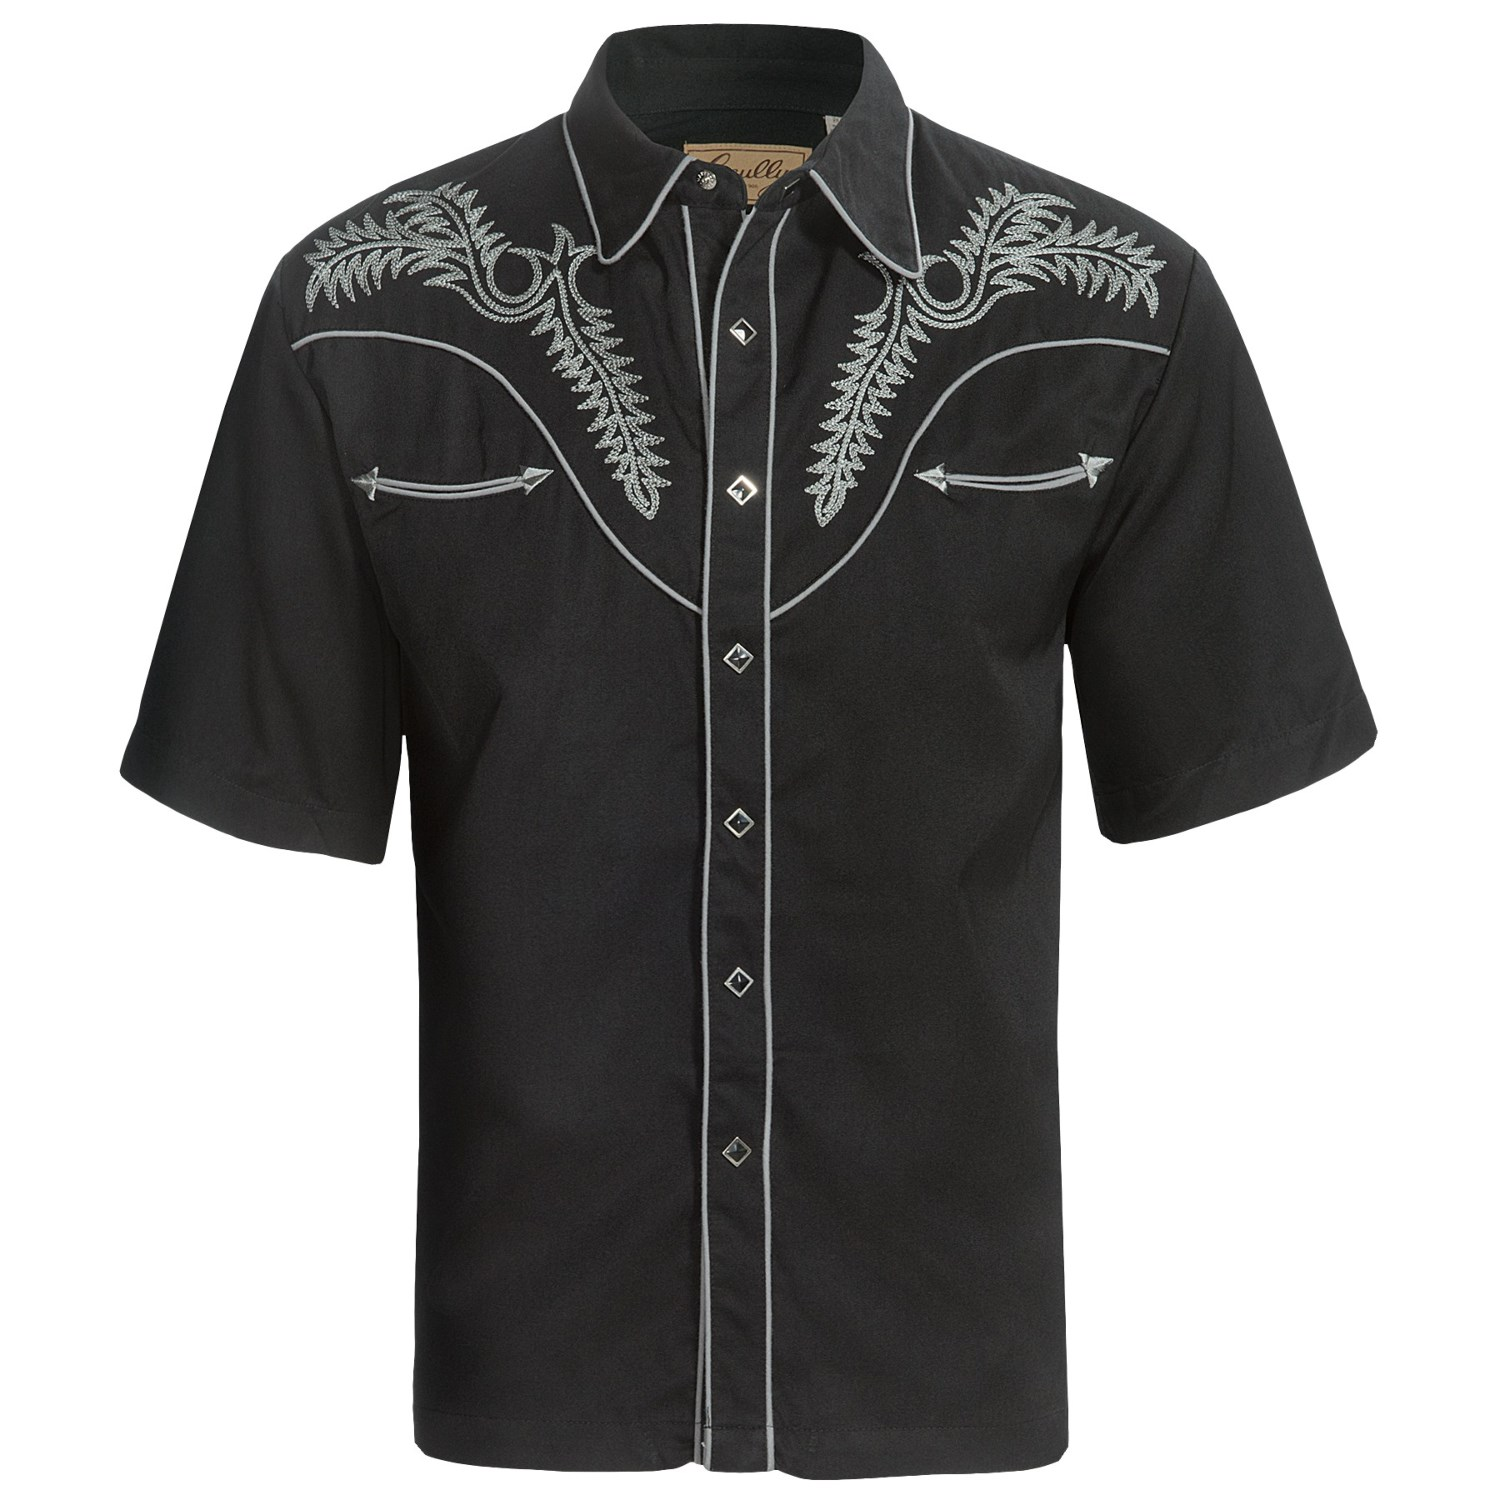 AliExpress carries many men's western shirt short sleeve related products, including male tee shirt, intercom record, the endoscope, plus size men tee, phone underwater camera, footwear luminous, leisure auger, door phone android, usb flexible camera.